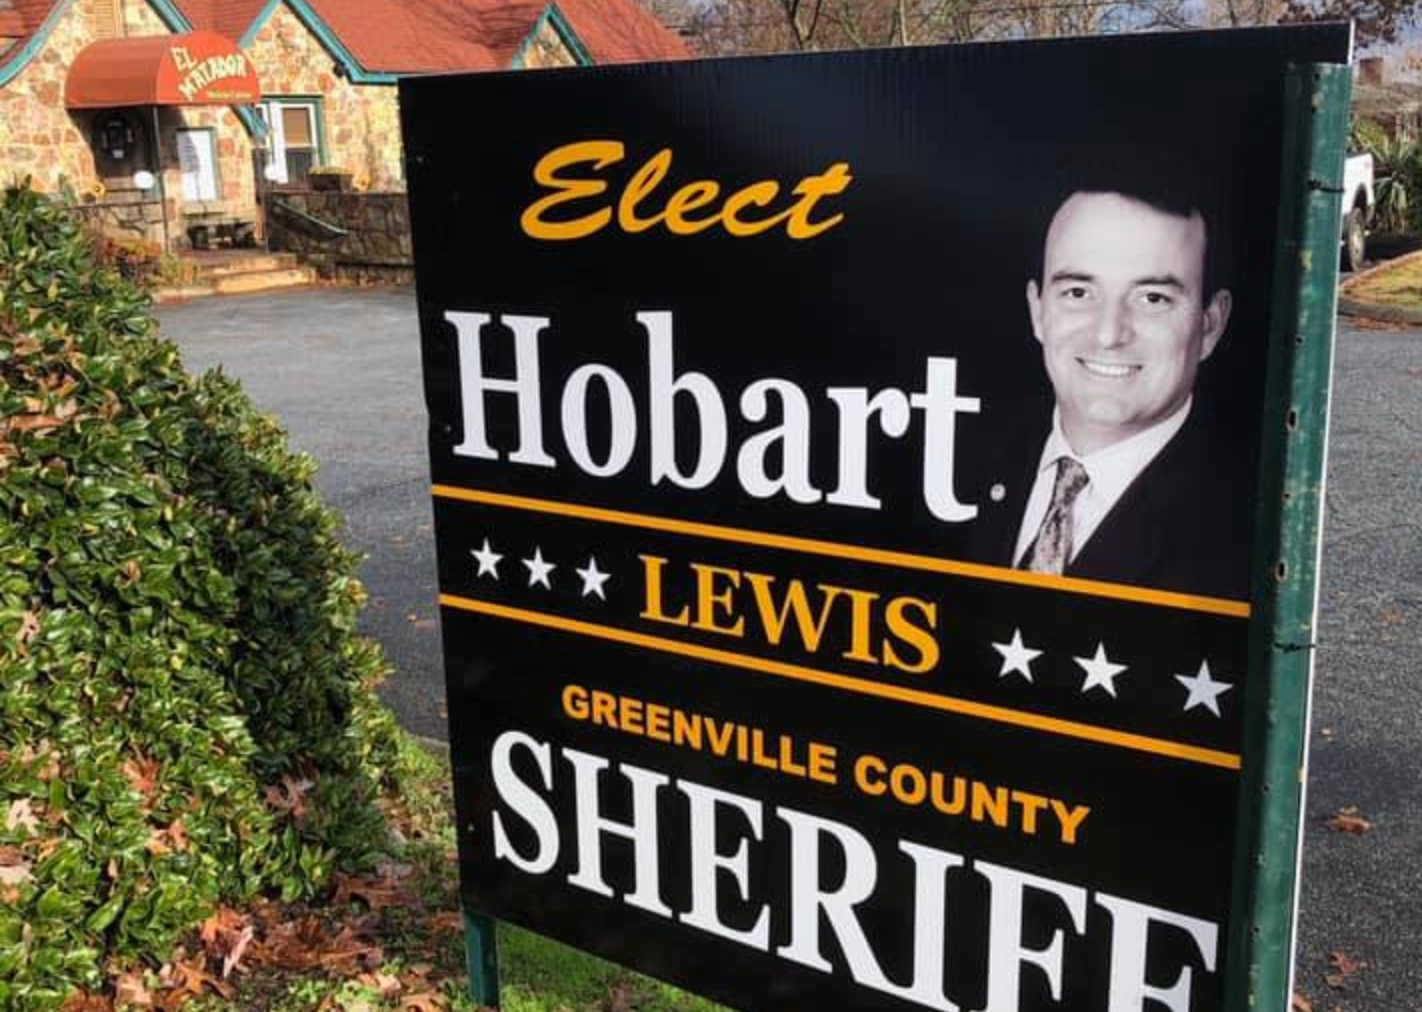 FITSNews – Hobart Lewis Crushes A.T. Smith In Greenville Sheriff's Runoff